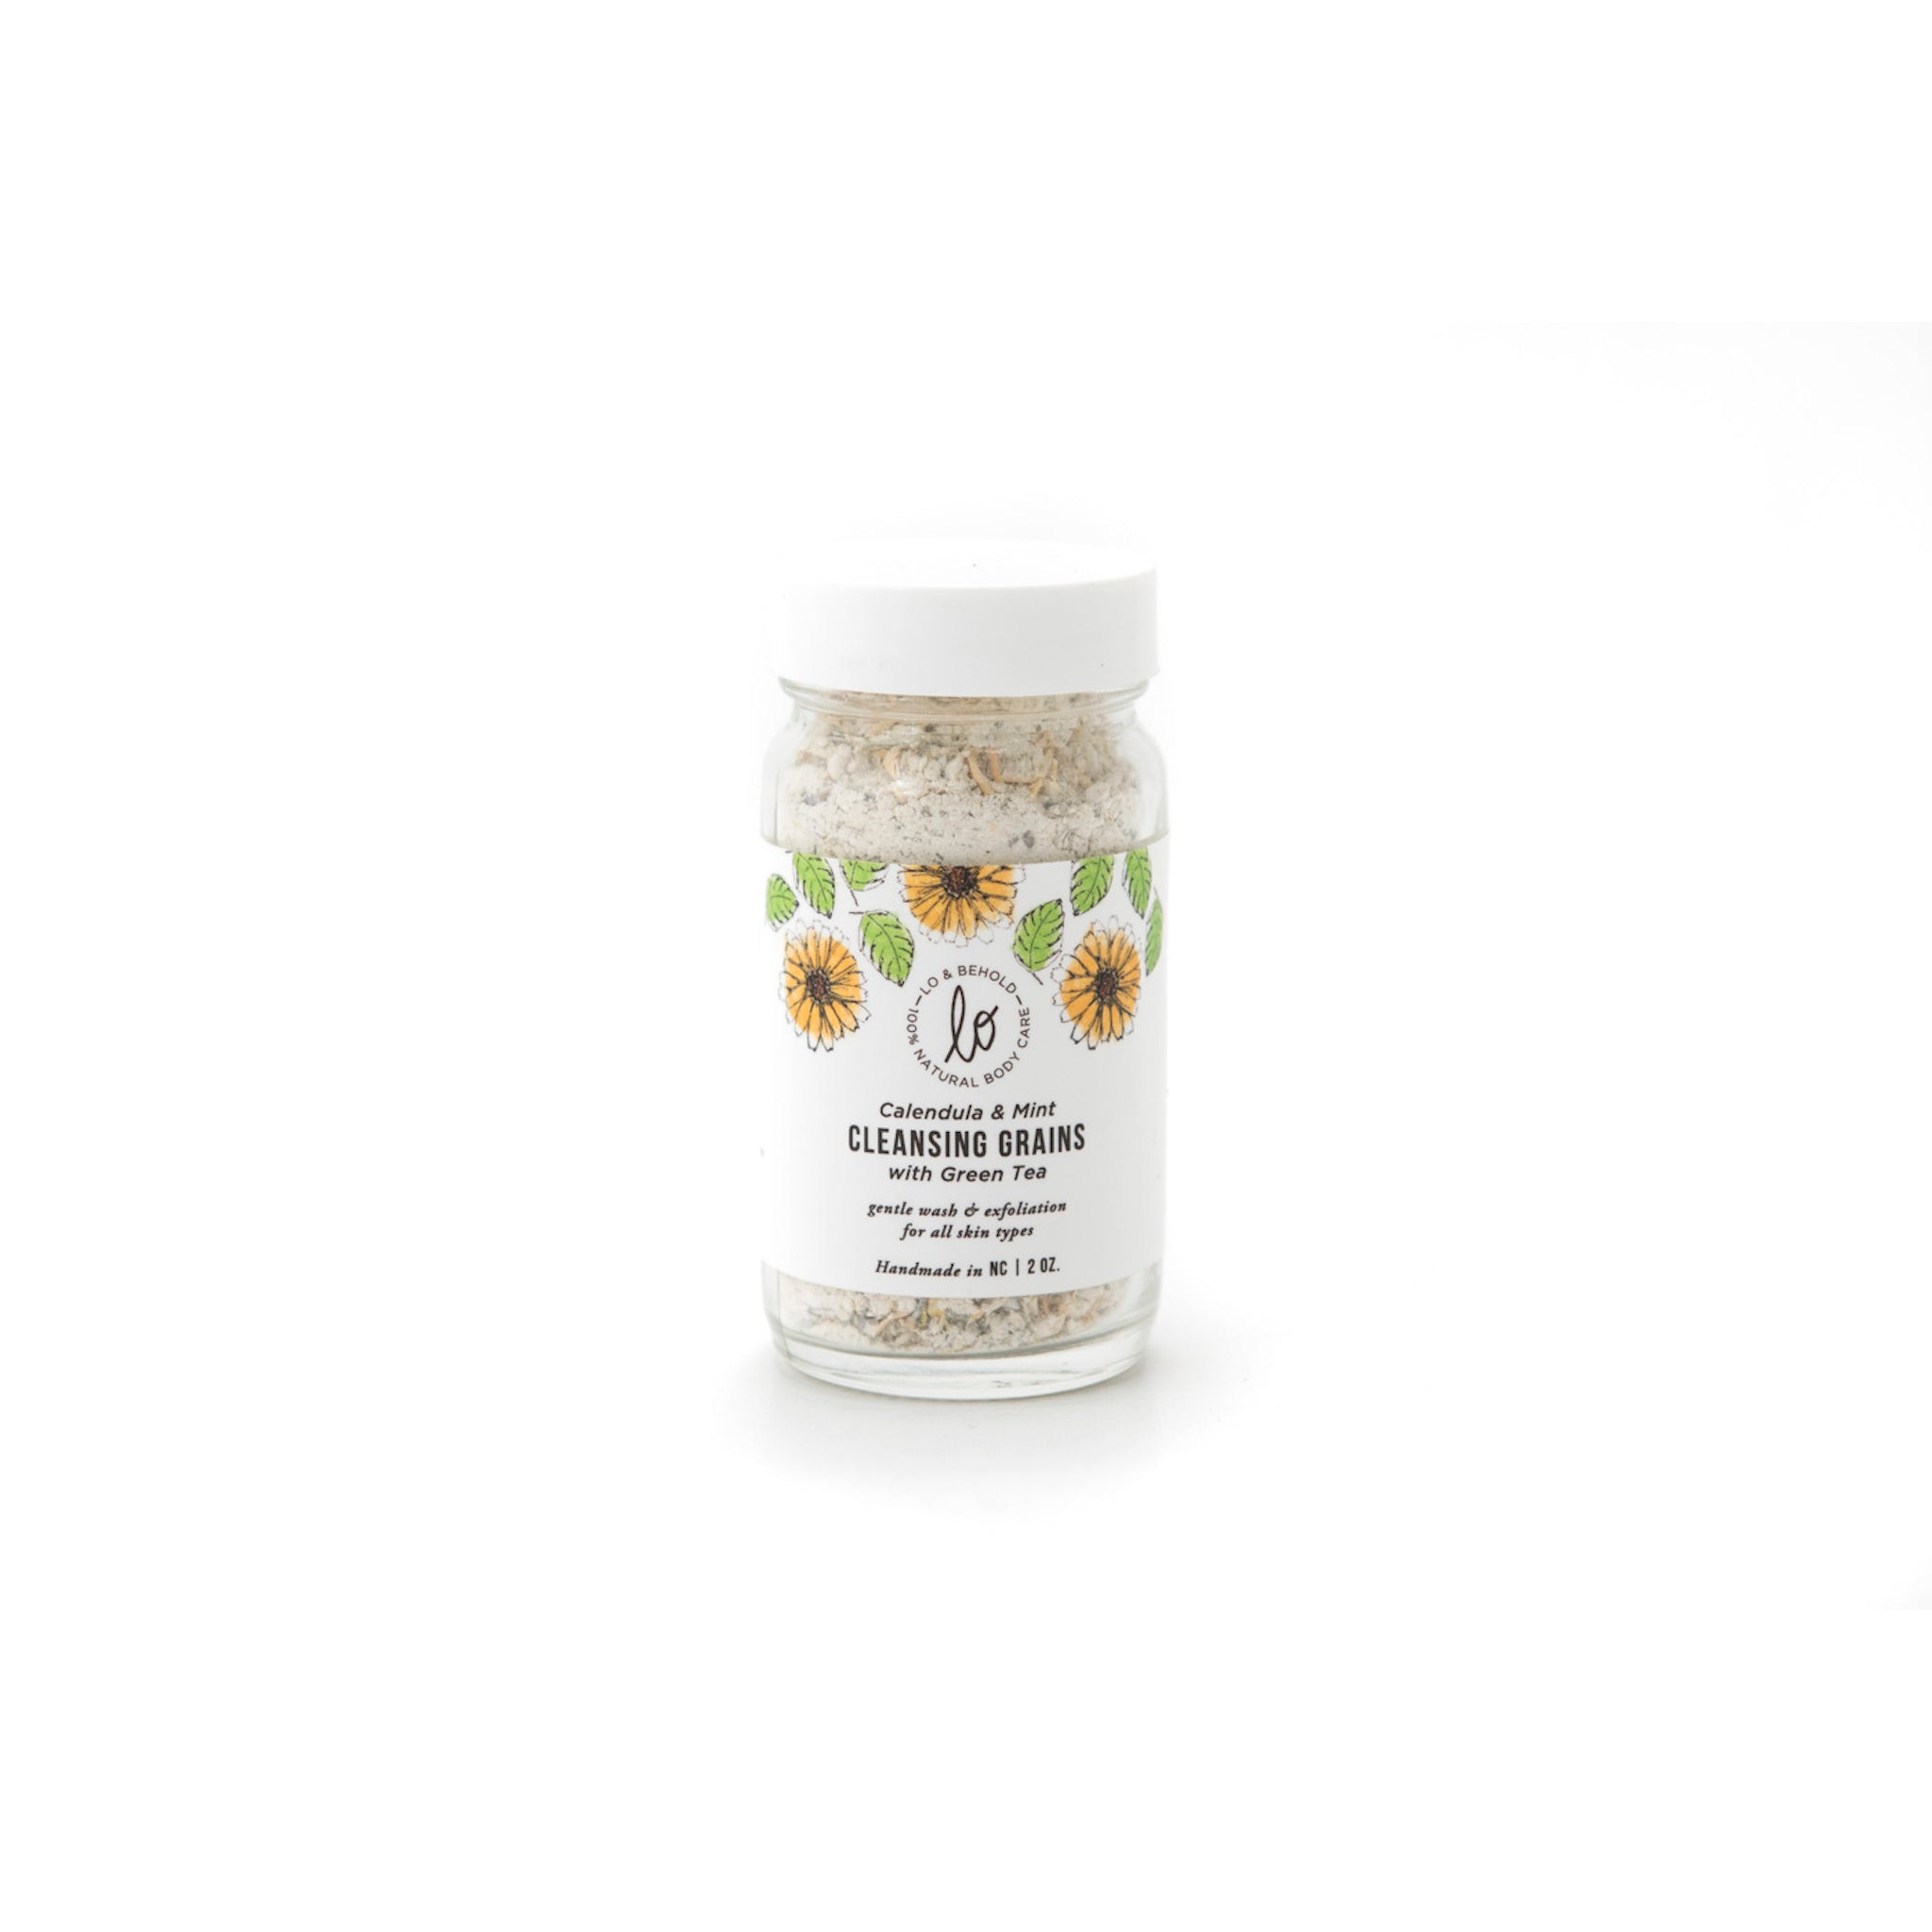 Lo & Behold - Calendula & Mint Cleansing Grains (2 oz)